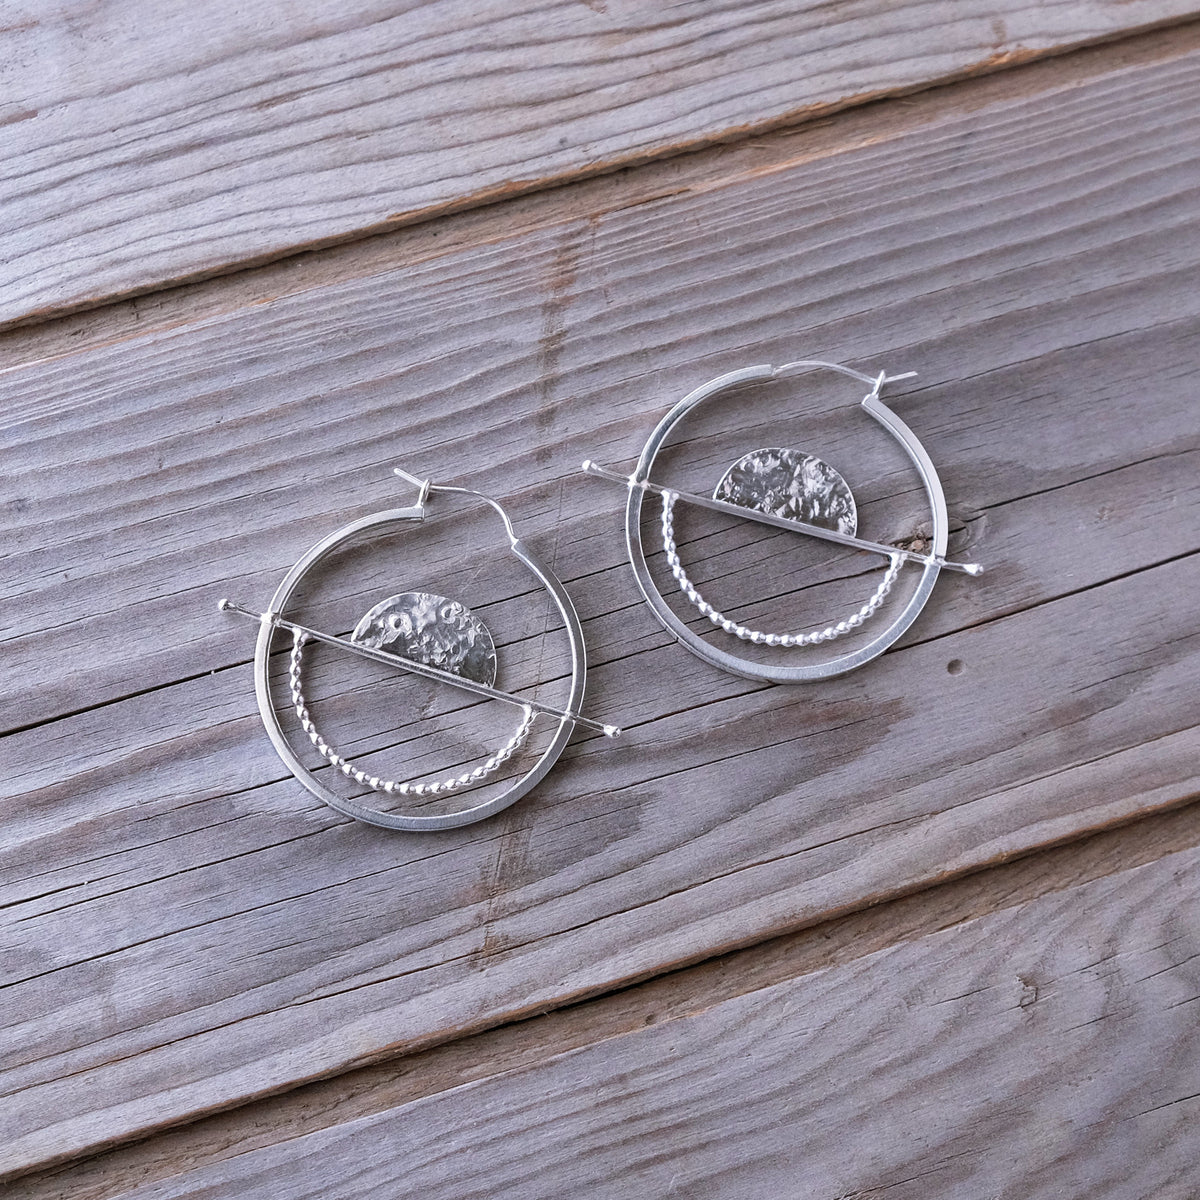 Geometric Sterling Silver Statement Full Balance Hoop Earrings — Sun Moon Horizon - Textured Hammered Silver -  Glass Sky Jewelry - Handmade in Columbus Ohio by artist Andrea Kaiser